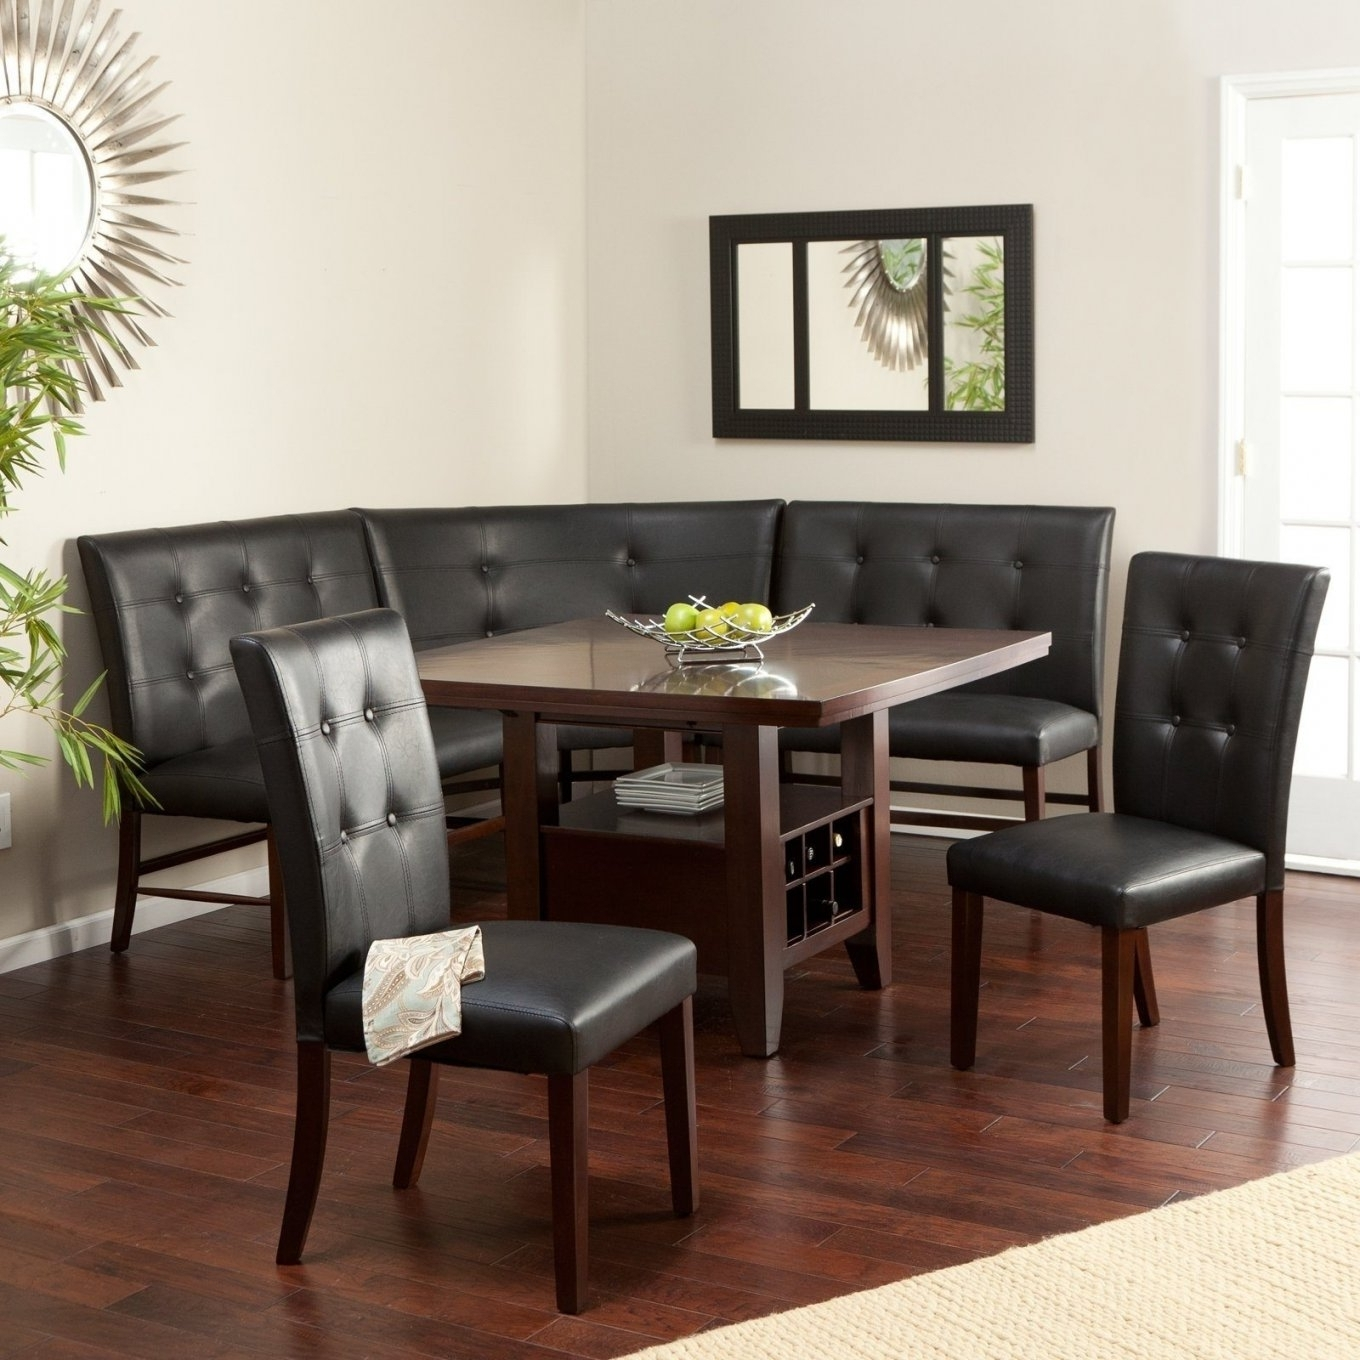 Latest 6 Person Round Dining Table Popular Tables Awesome And With Regard With 6 Person Round Dining Tables (View 16 of 25)